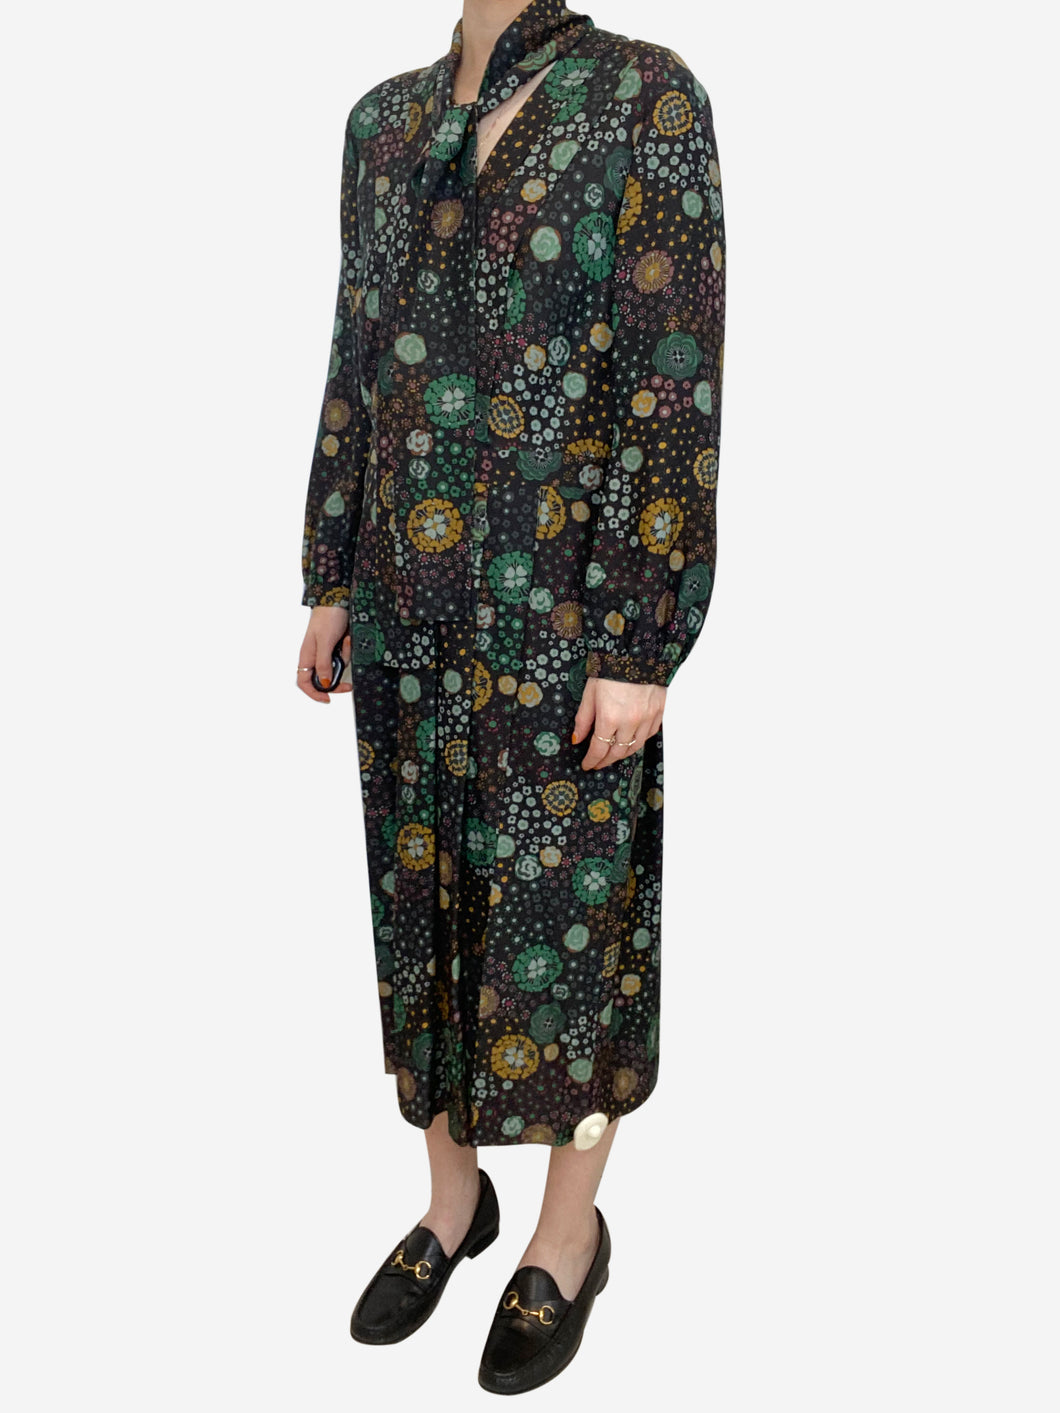 Black floral pleated midi dress with neck tie - size UK 12